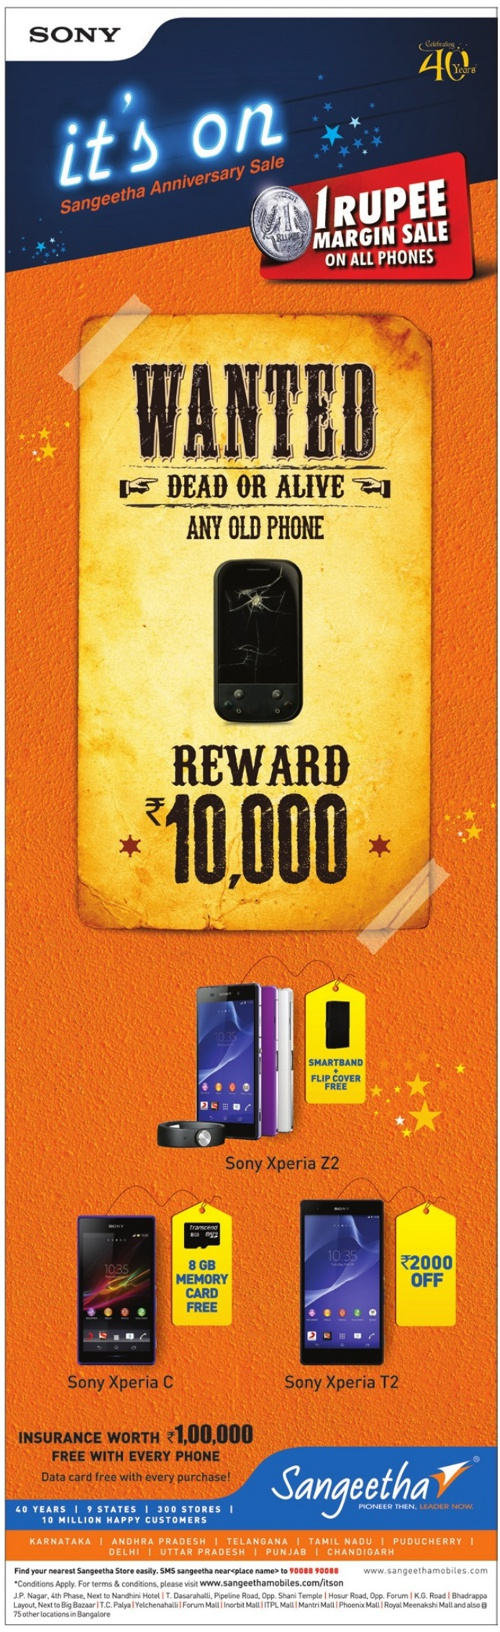 Faber Attractive Offers Bangalore Saleraja Motorola W230 Silver Free Memory Card 1gb Sangeetha On Sony Experia